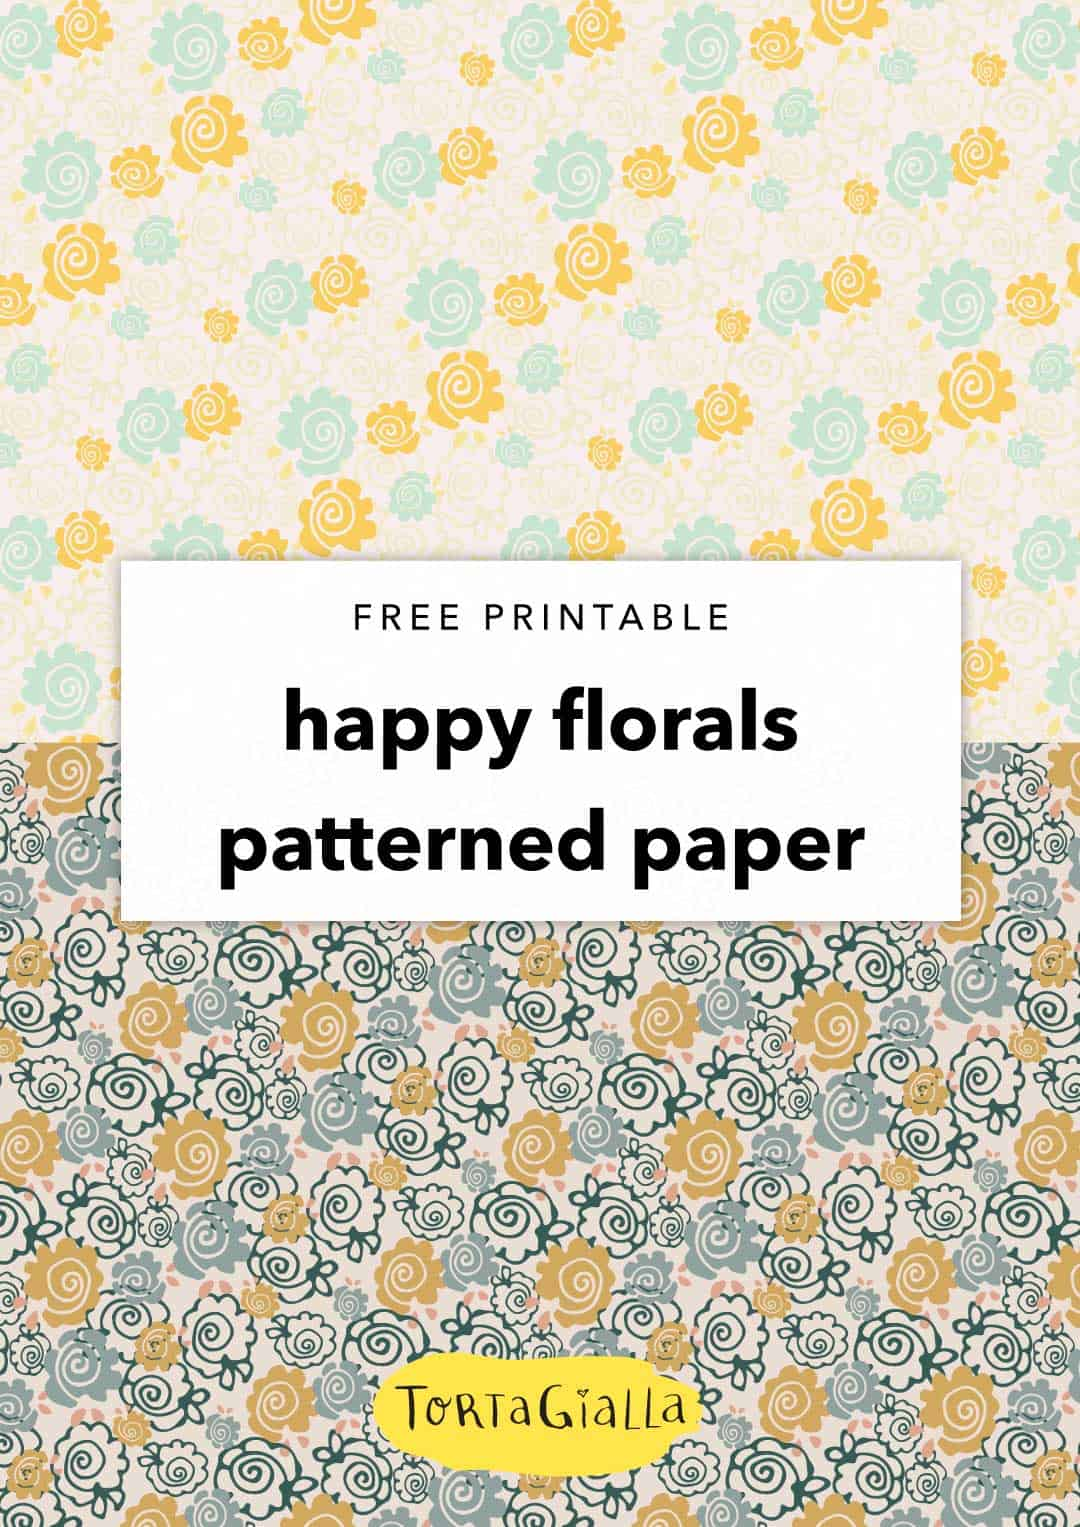 photograph relating to Printable Patterned Paper titled Totally free Printable Content Florals Patterned Papers tortagialla